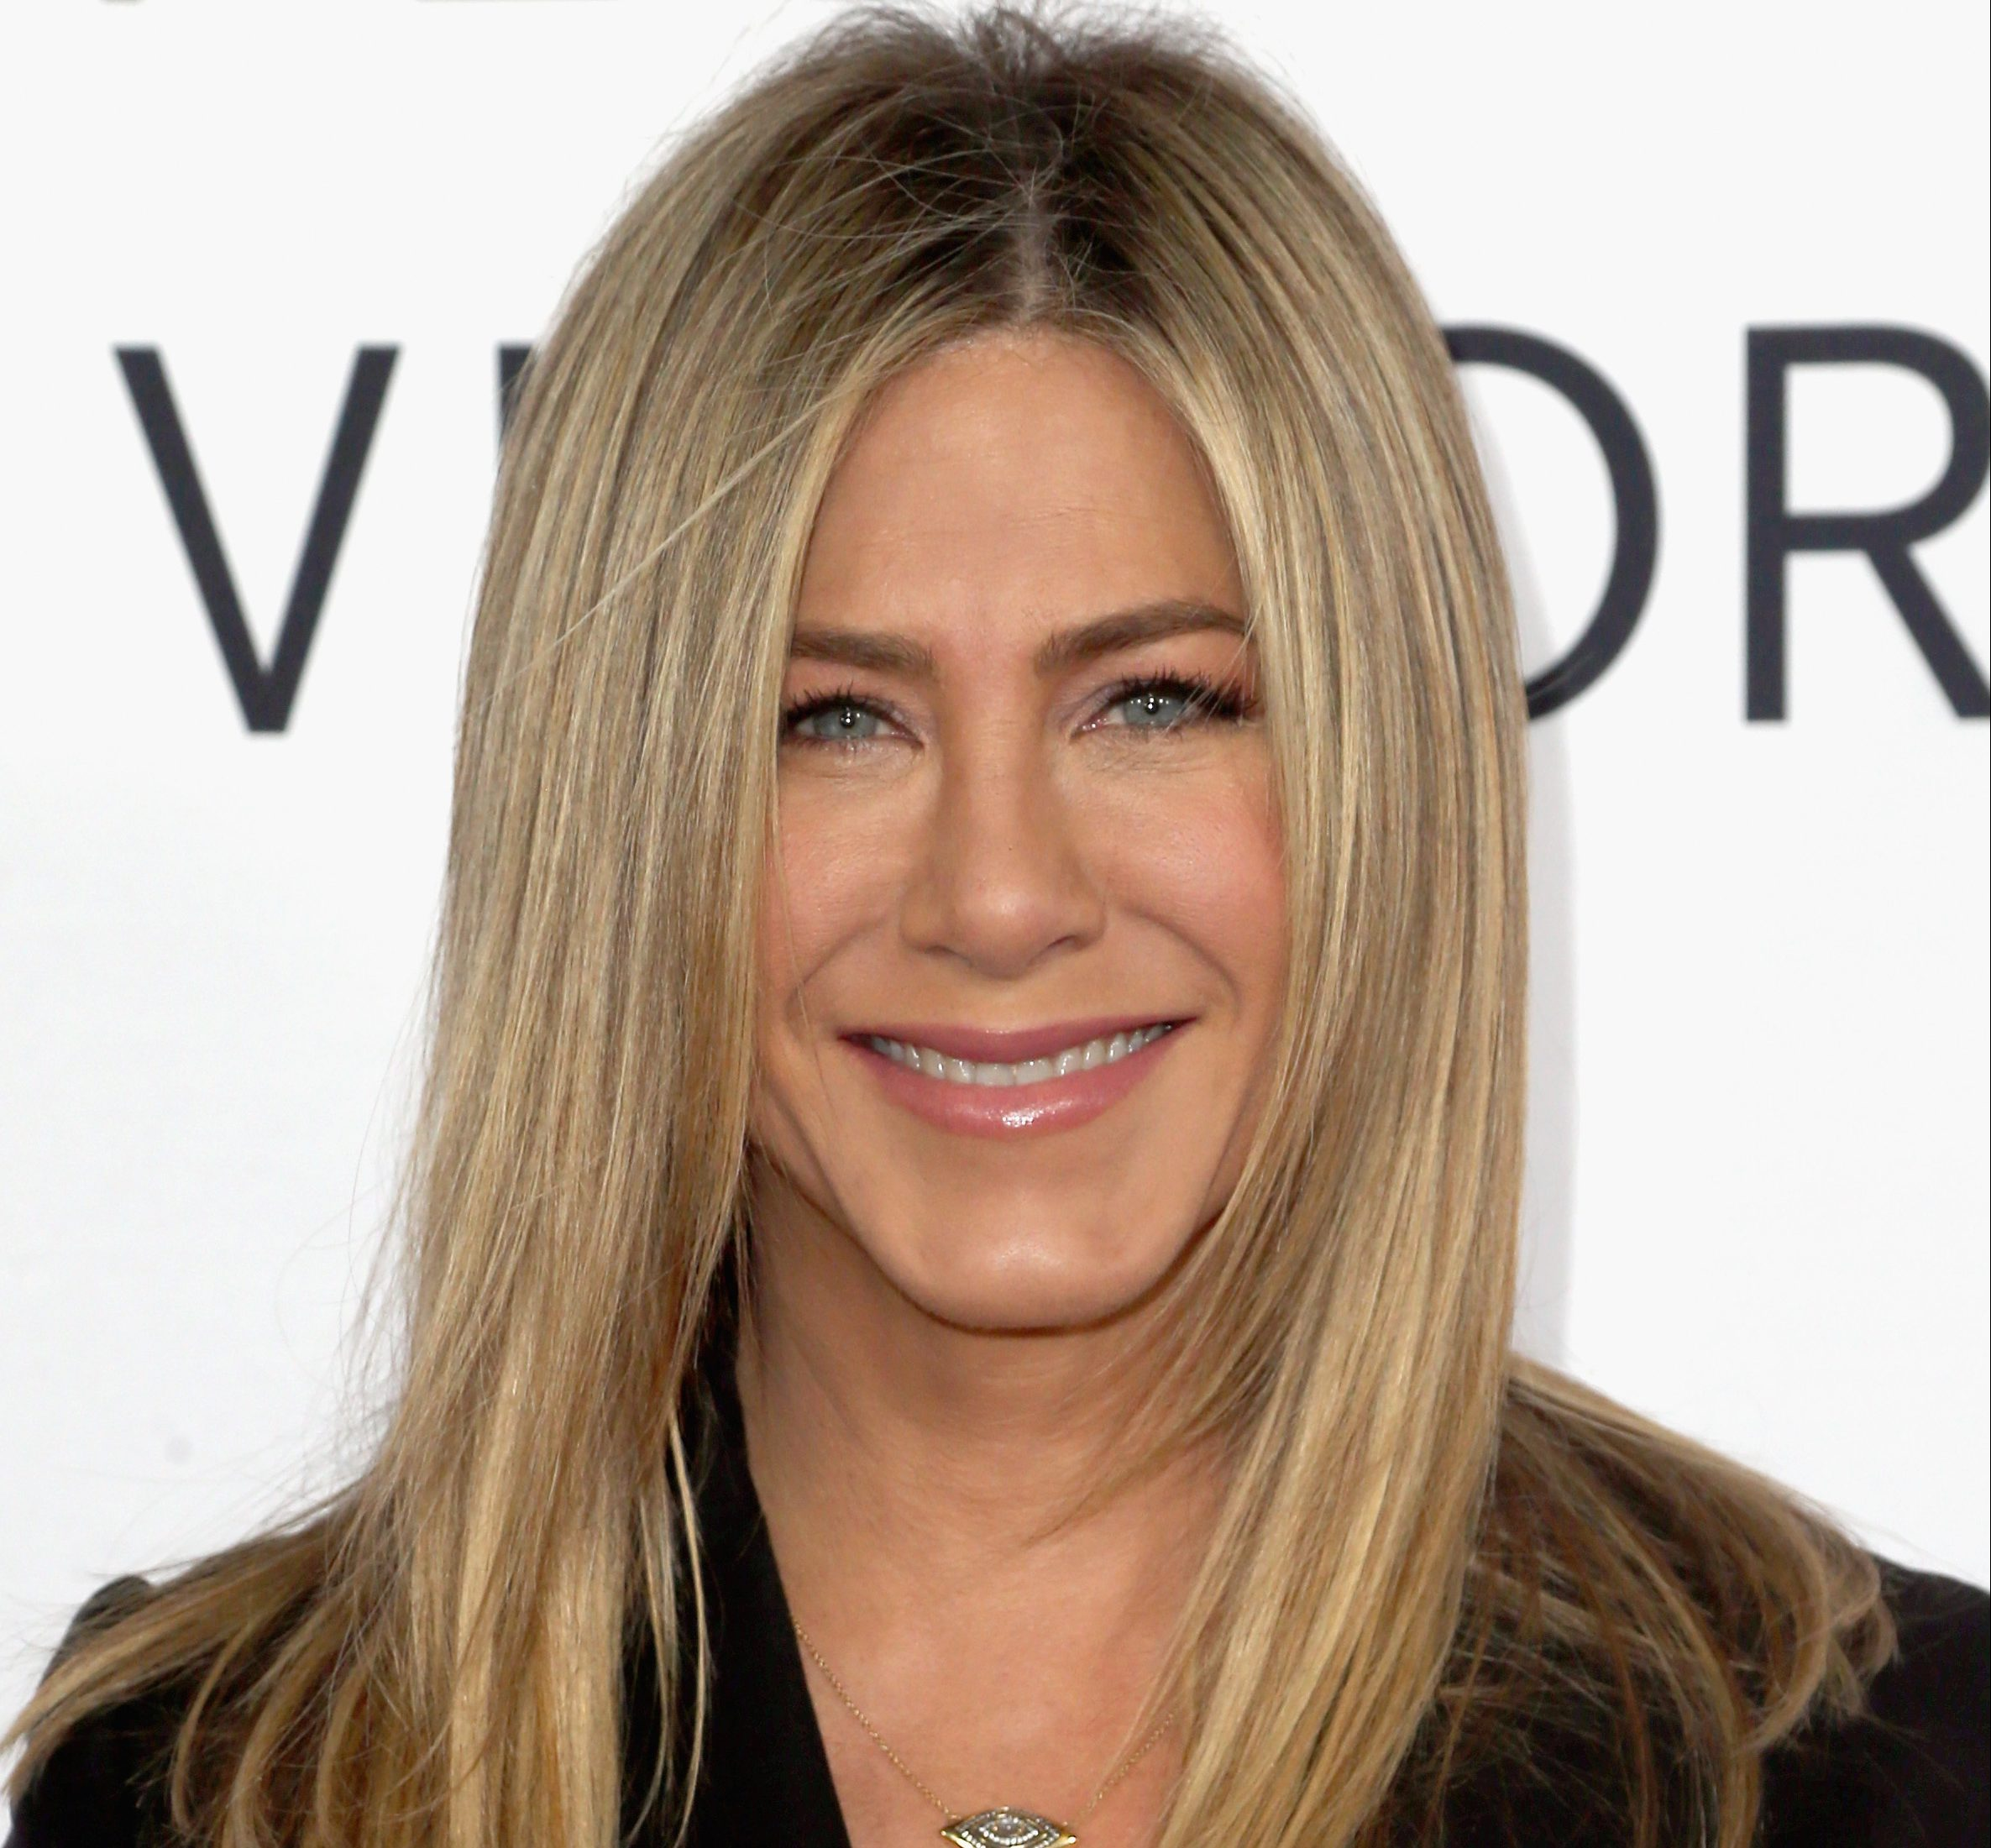 """HOLLYWOOD, CA - APRIL 13: Actress Jennifer Aniston attends Open Roads World Premiere of """"Mother's Day"""" at TCL Chinese Theatre IMAX on April 13, 2016 in Hollywood, California. (Photo by Frederick M. Brown/Getty Images)"""